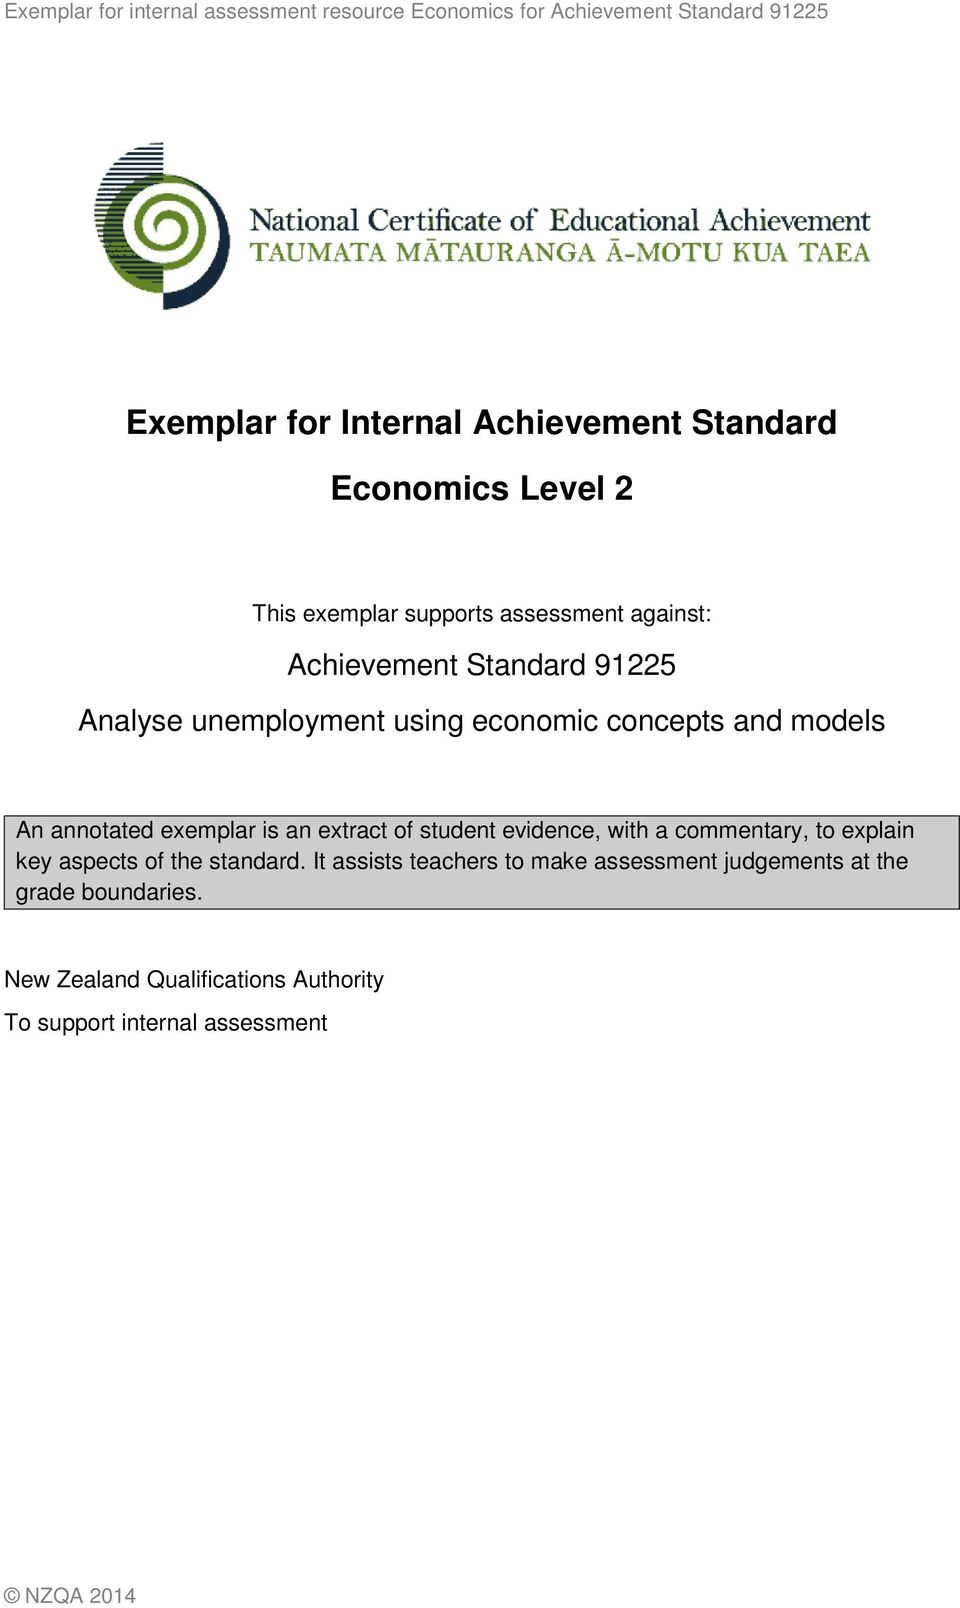 and models An annotated exemplar is an extract of student evidence, with a commentary, to explain key aspects of the standard.